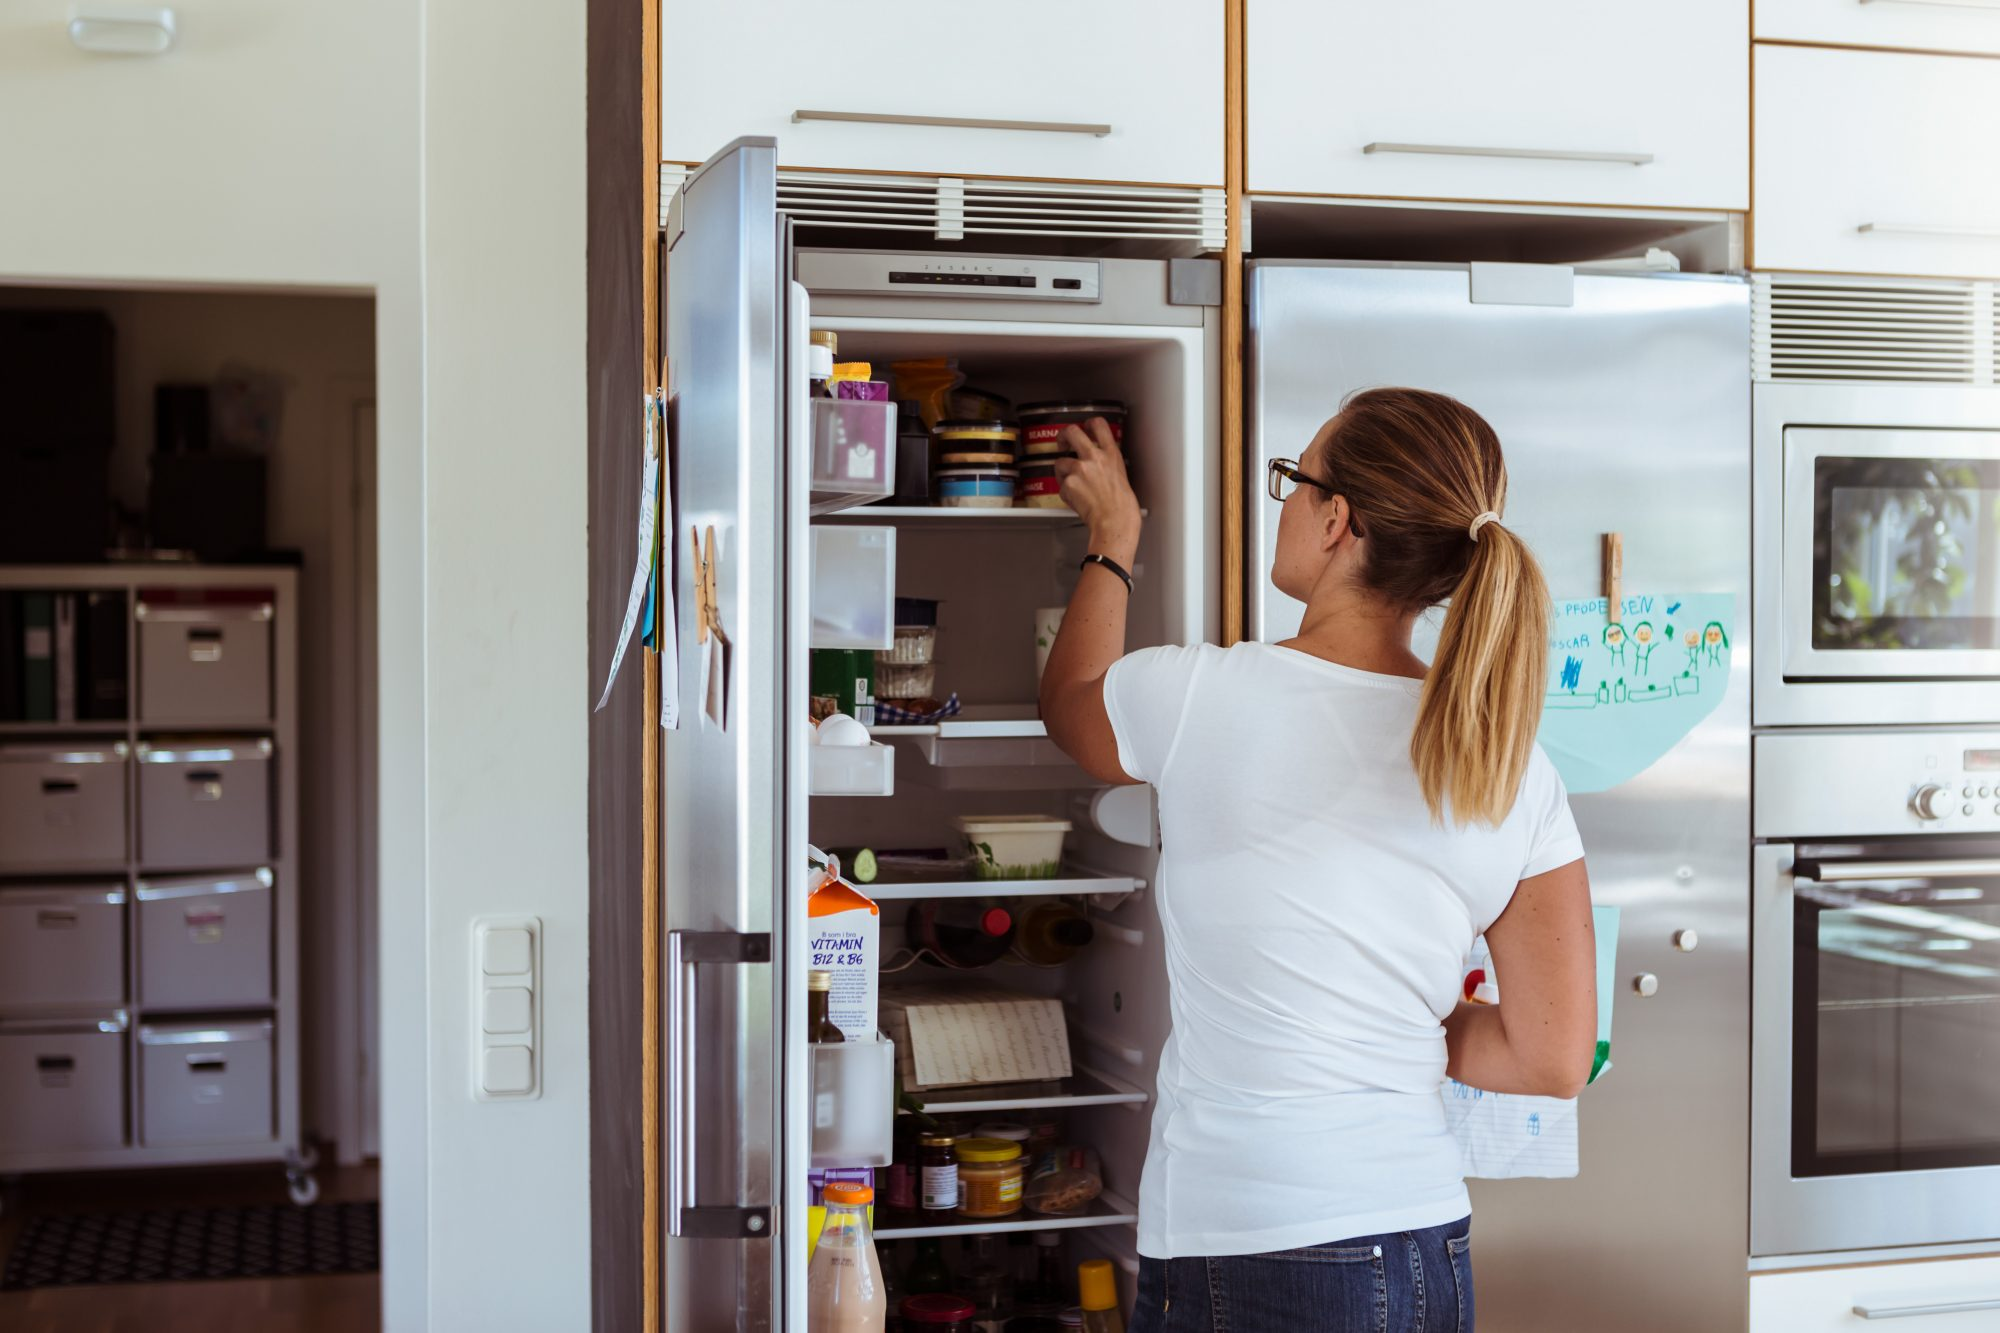 How I Used Up Everything When My Refrigerator Died